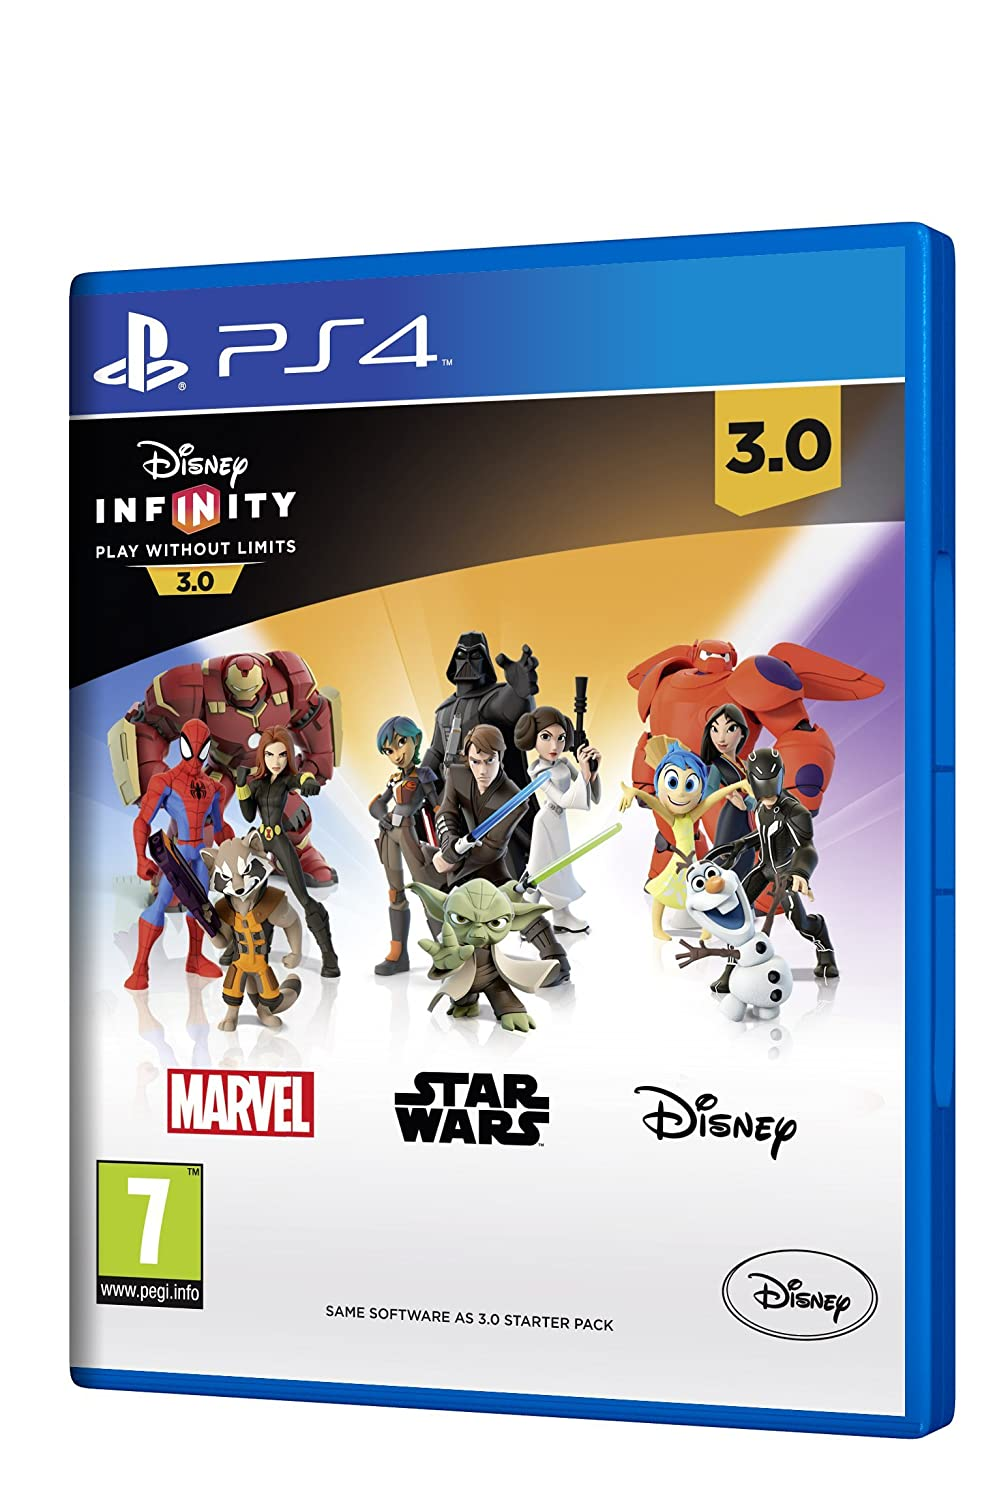 Disney Infinity 3.0 - PS4 Standalone Software Indefinitely Bombing free shipping